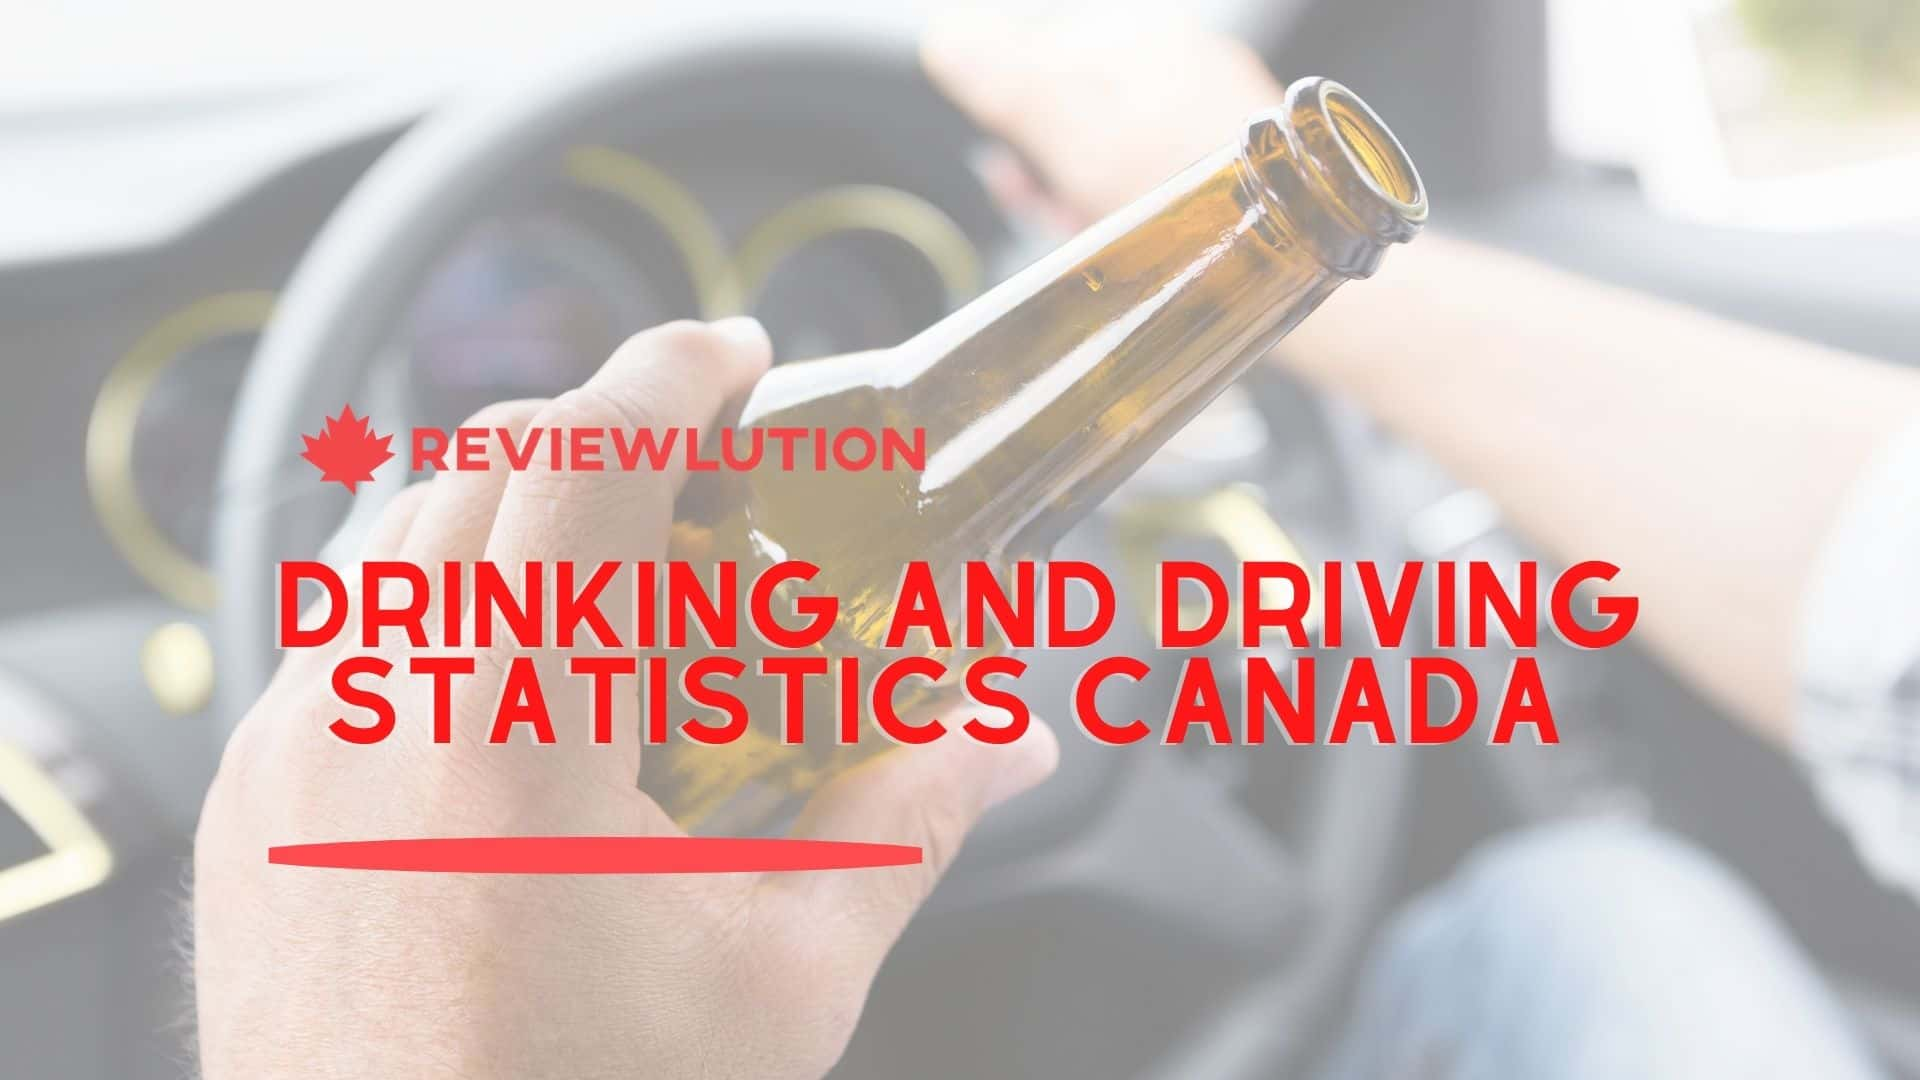 17 Worrying Drinking and Driving Statistics Canada for 2021